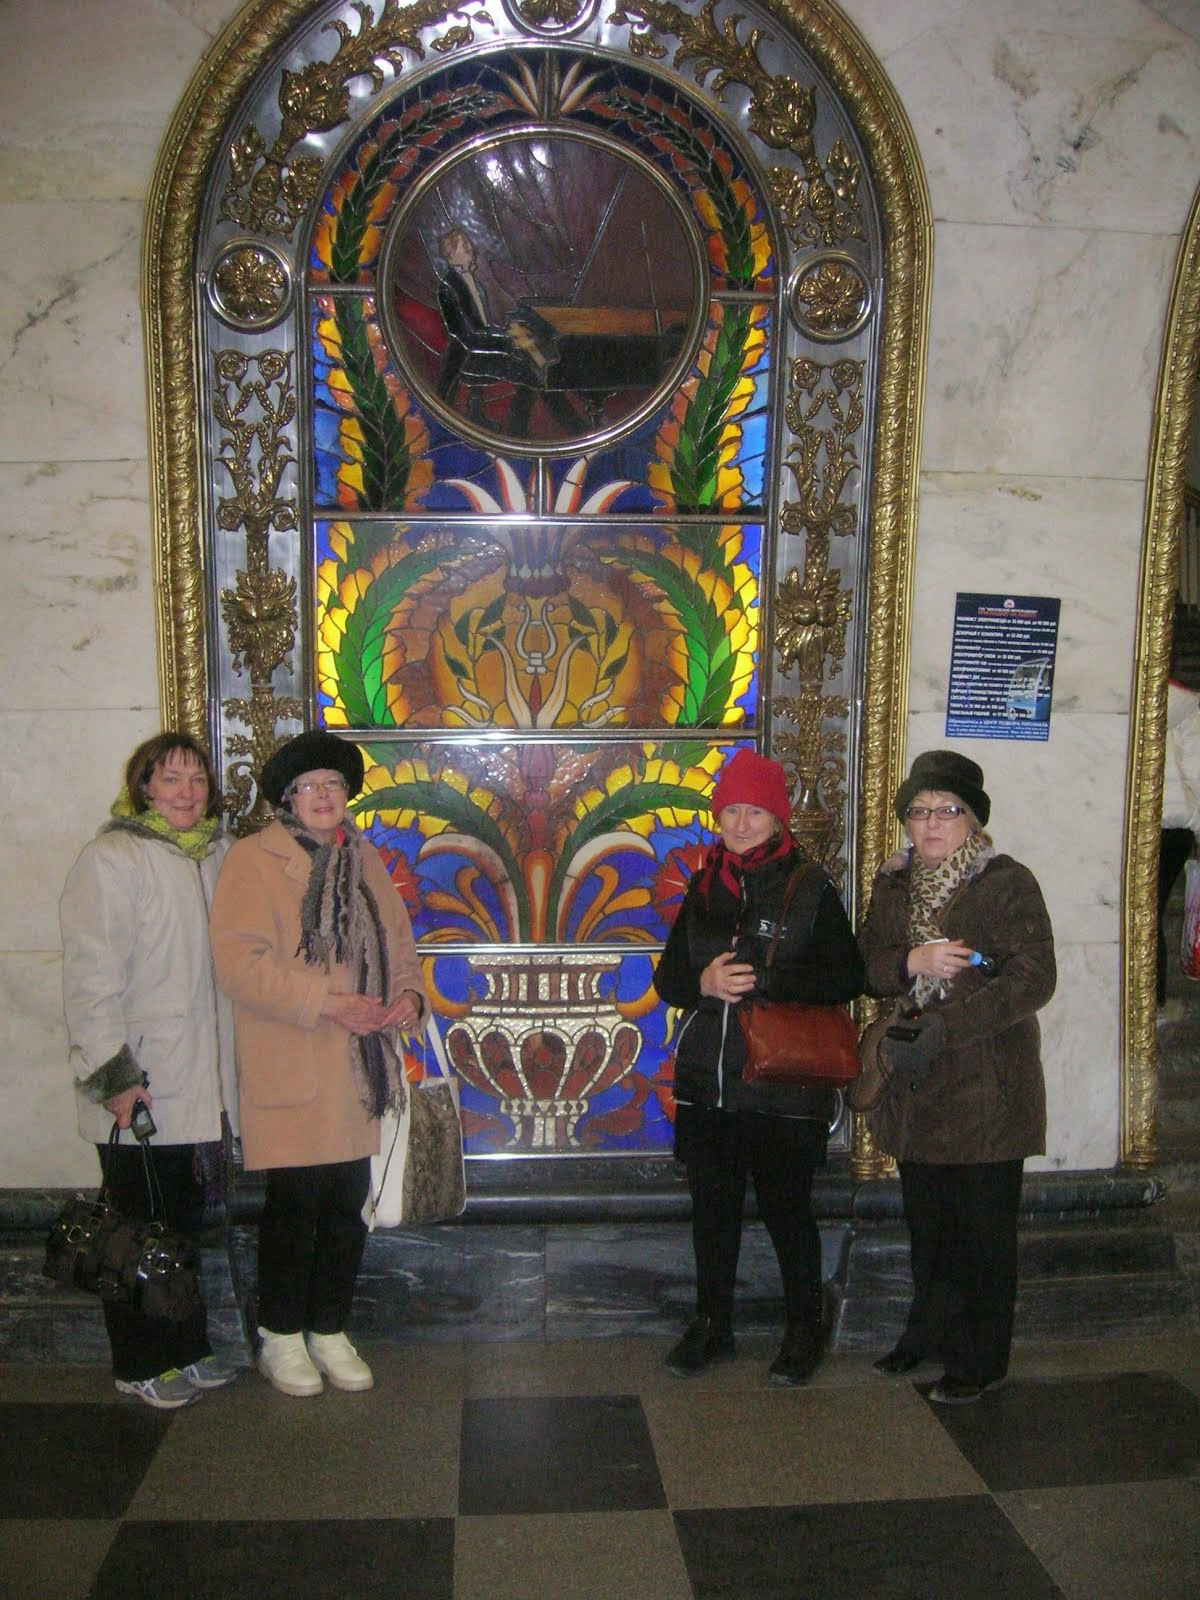 Stain glass in the Metro!